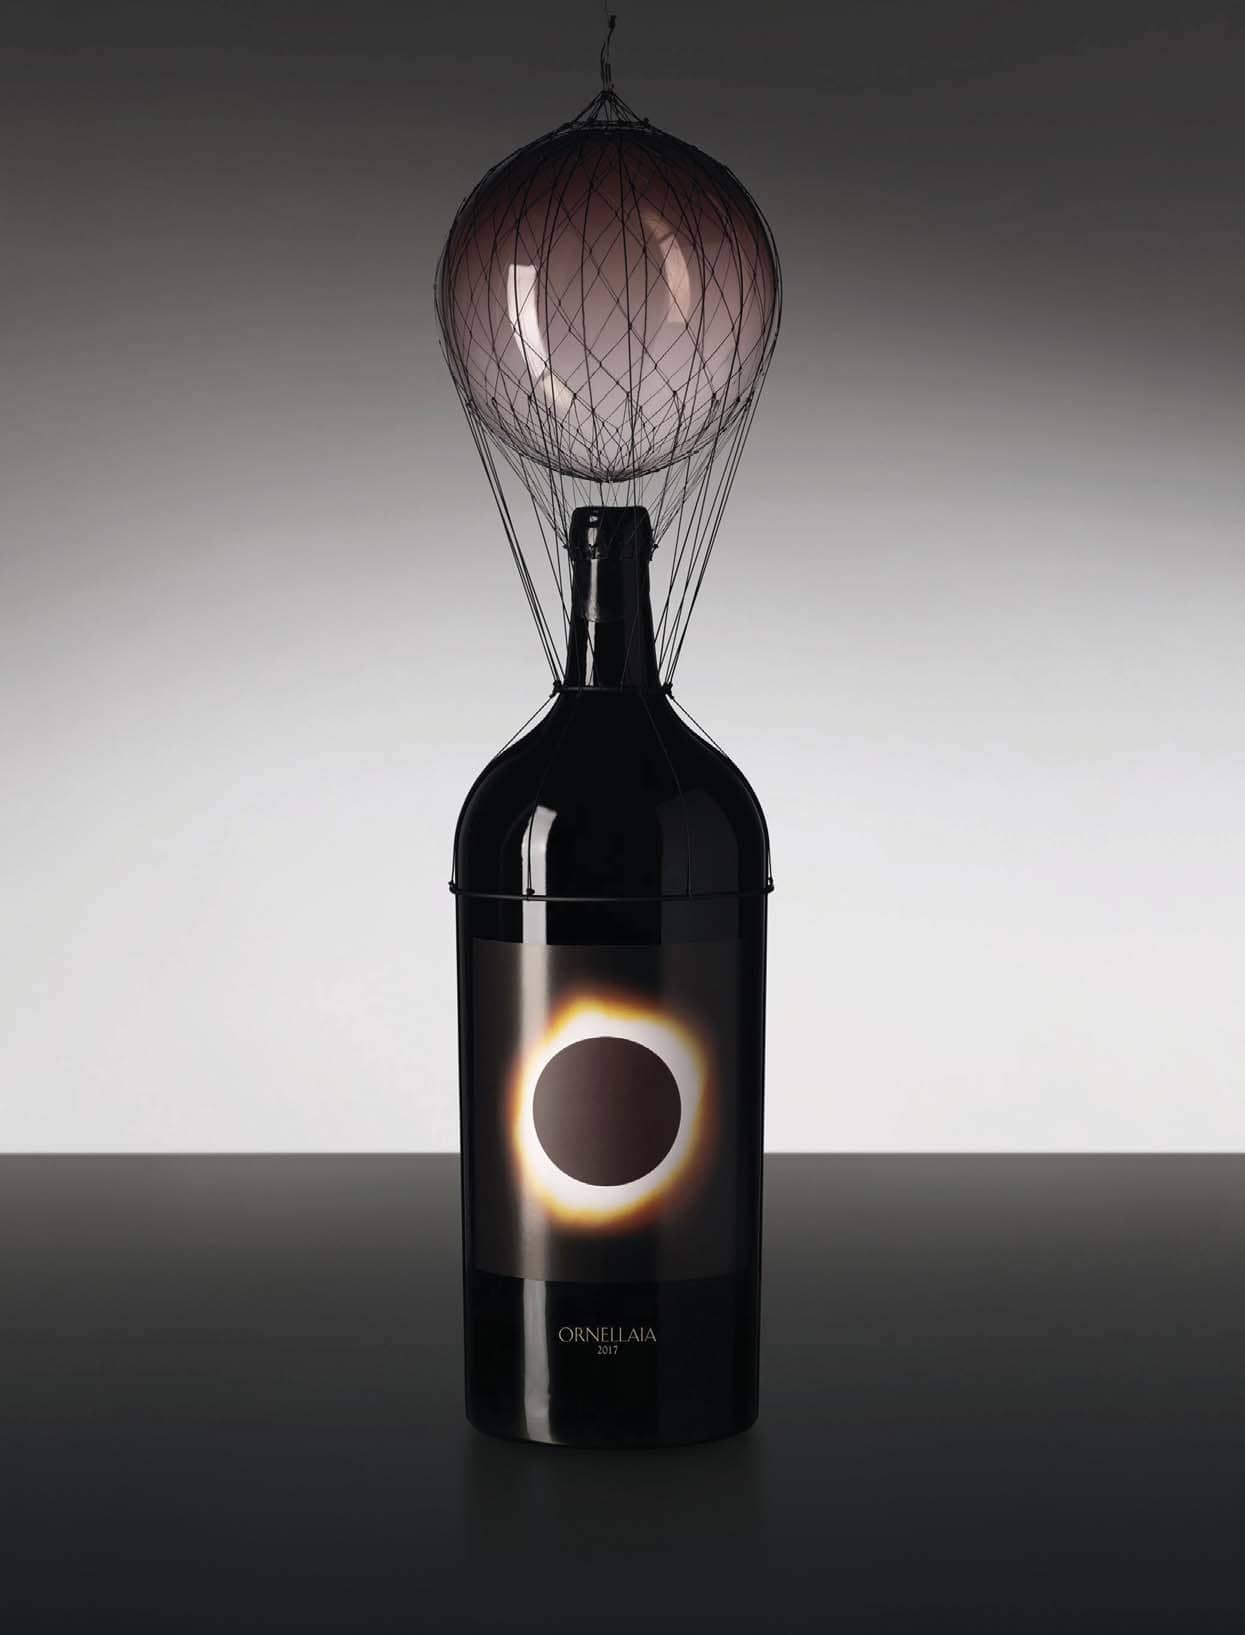 A Collector's Auction Of Wine, Art, And Experience